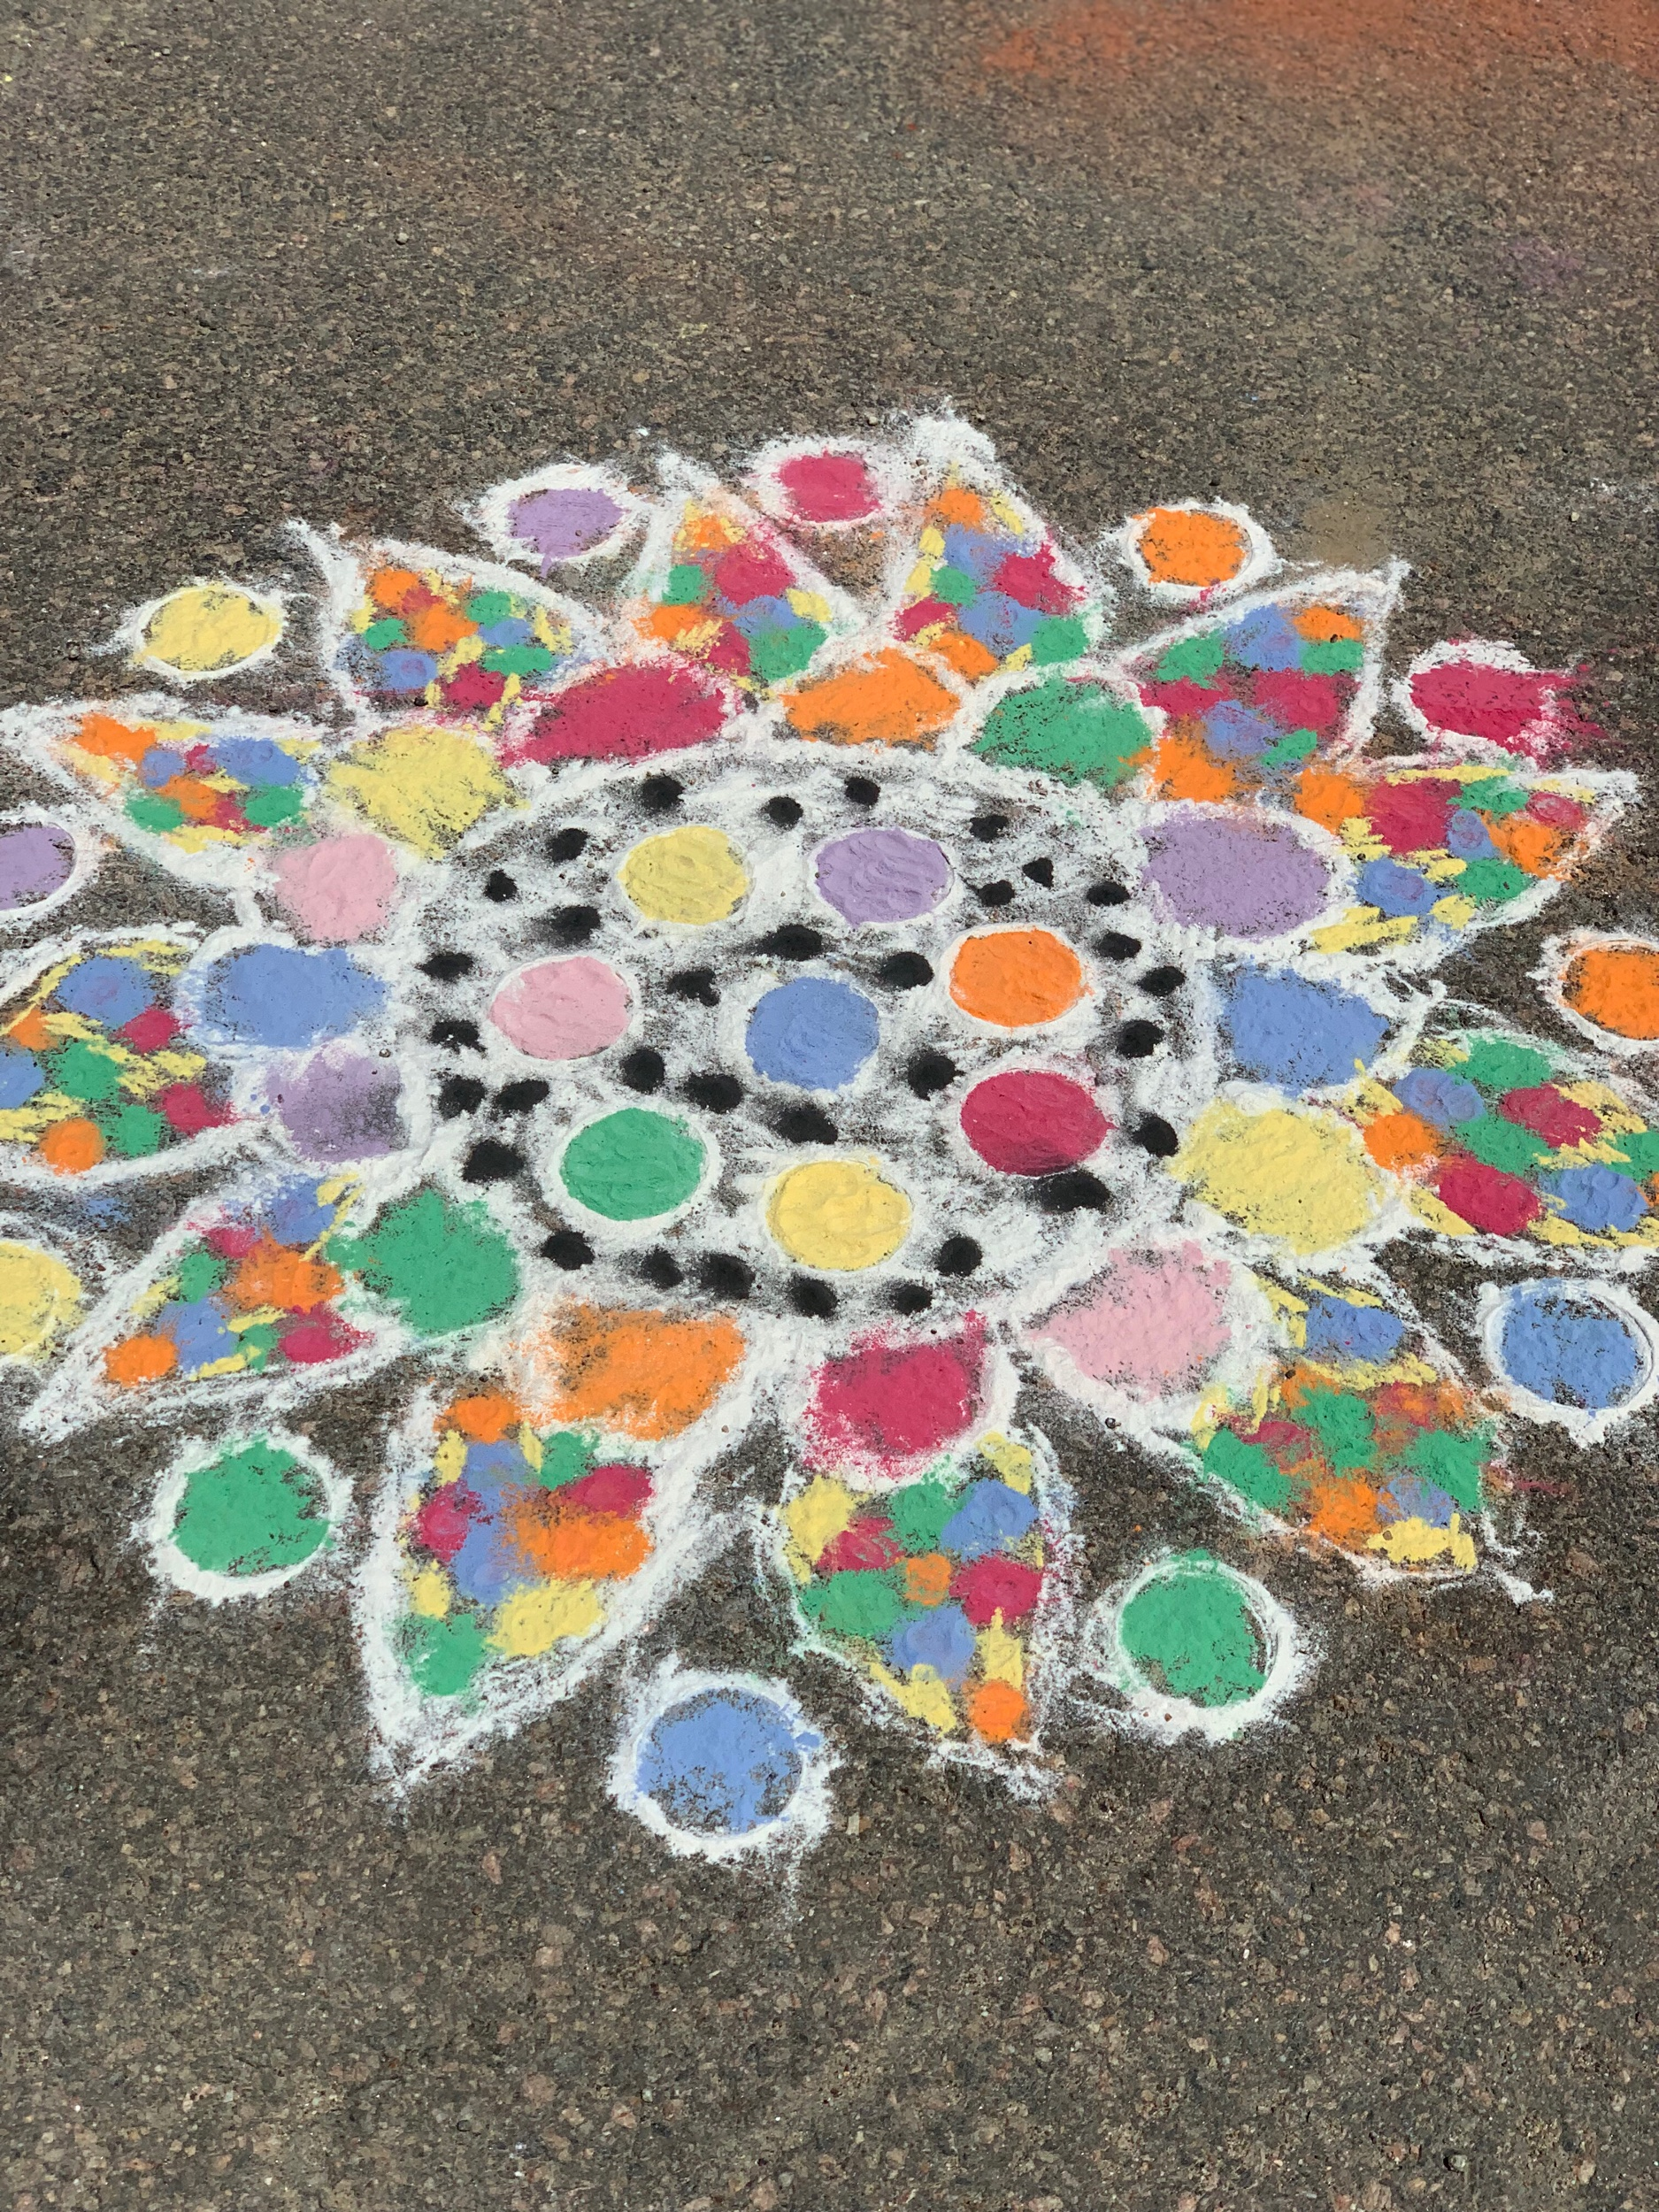 Rangoli (not mine, by someone else who has more artistic ability)